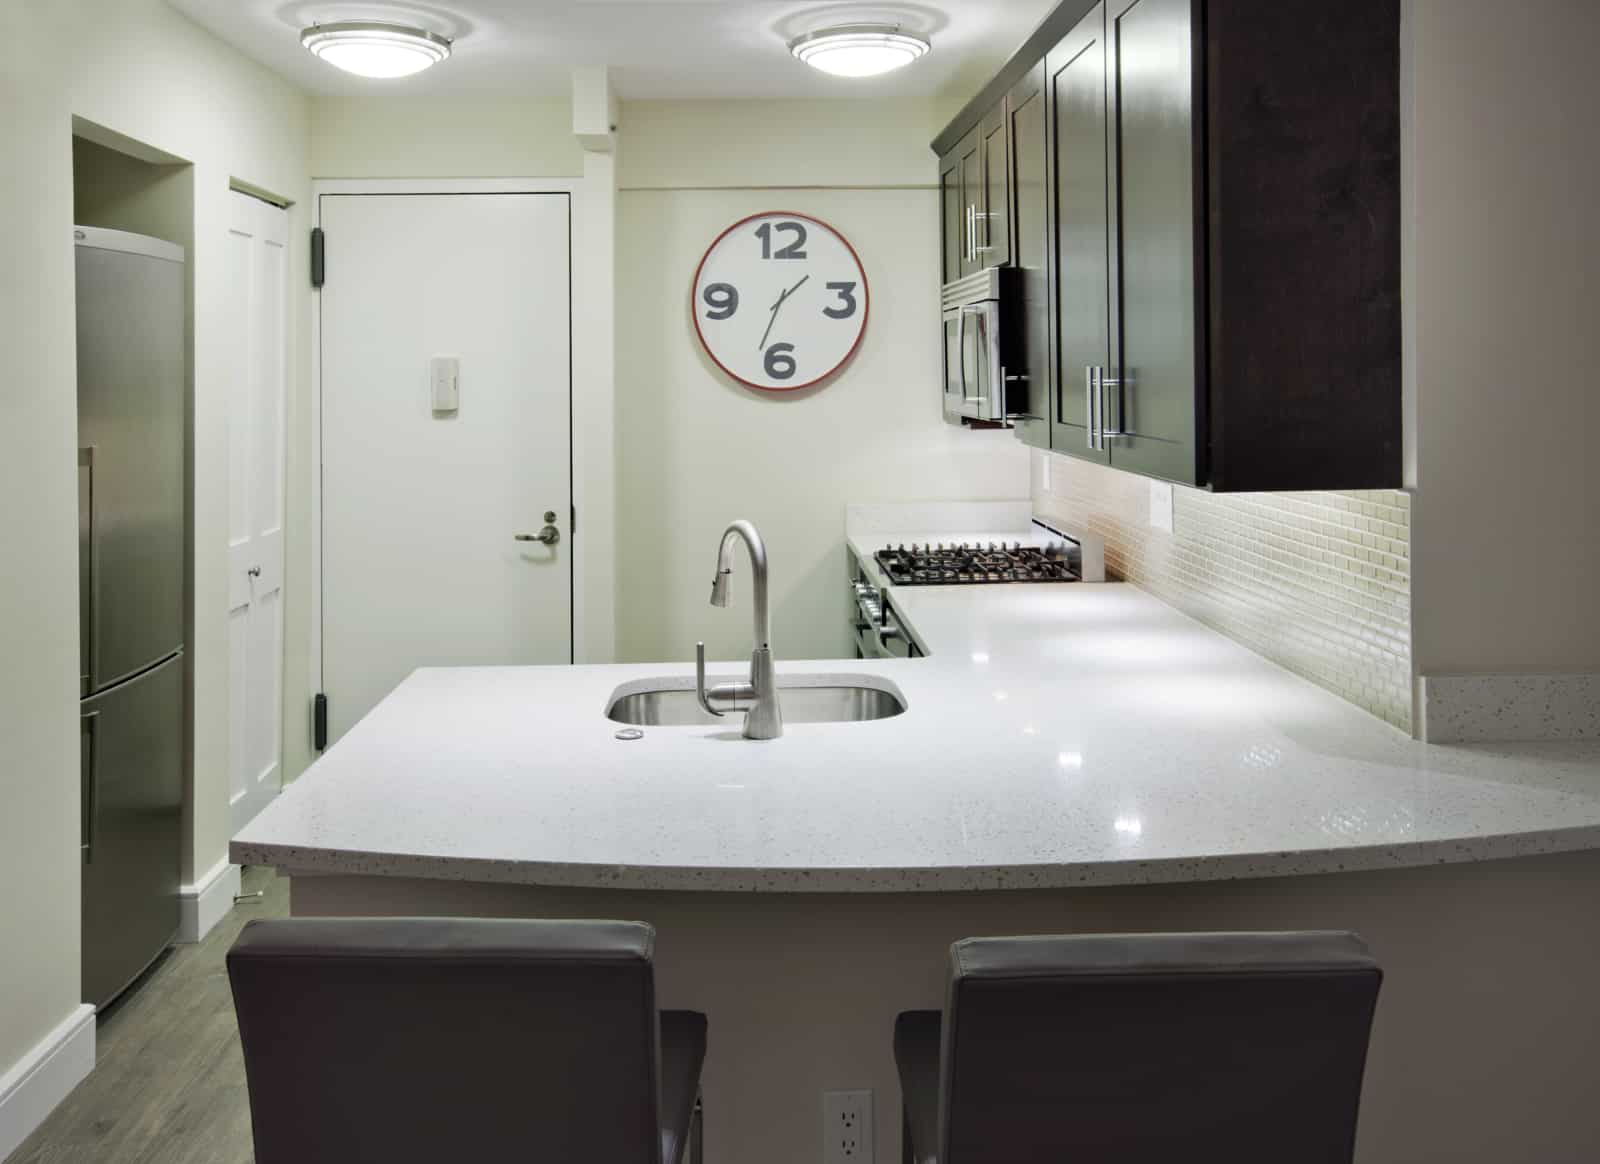 Interior of apartment kitchen with stainless steel appliances, white countertop, and seating.